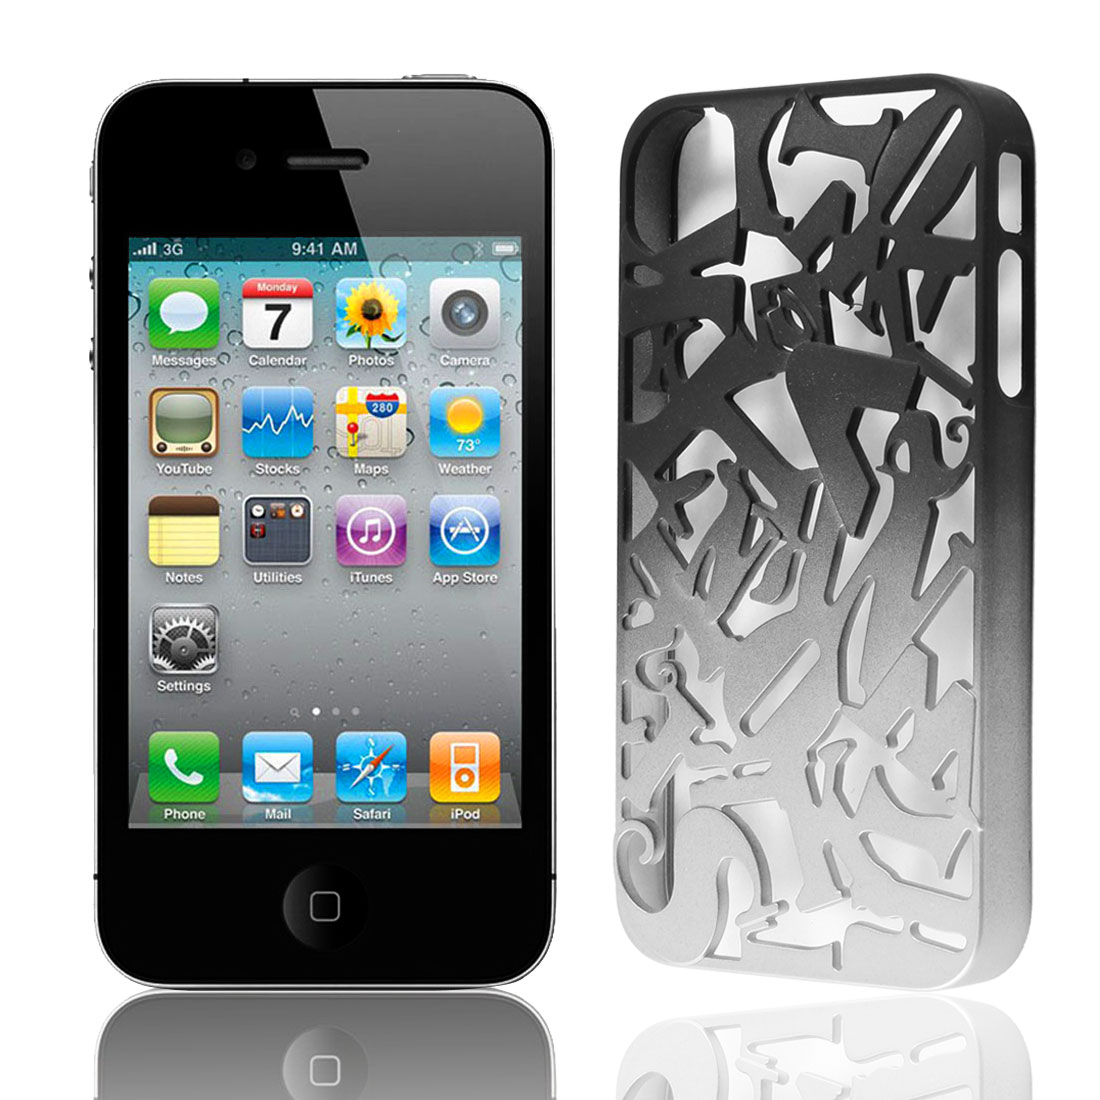 Black Silver Tone Plastic Cutt Off Letter Hard Back Case Cover for iPhone 4 4S 4G 4GS